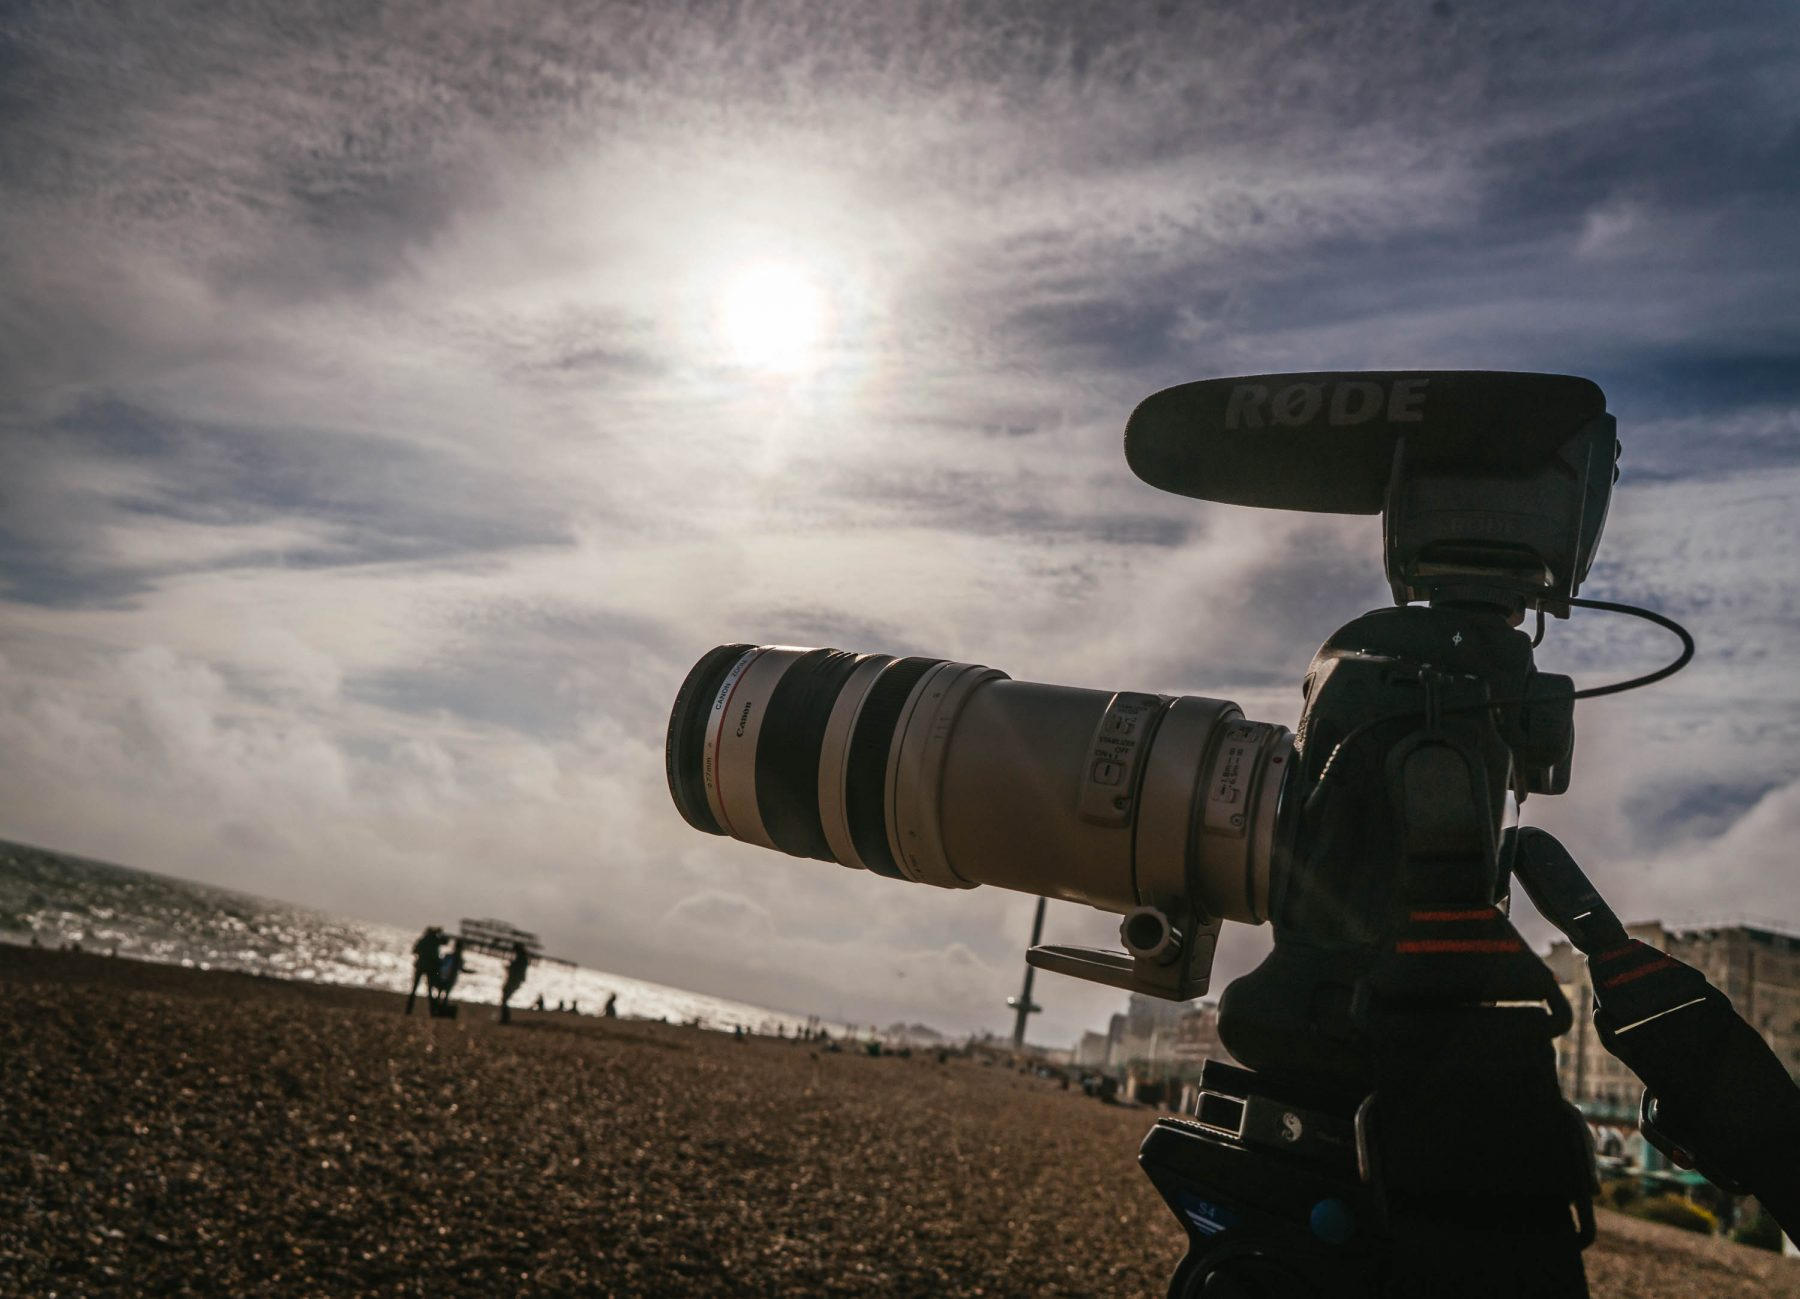 Filming with the Canon 1DX MK II | Philip Bloom- Blog